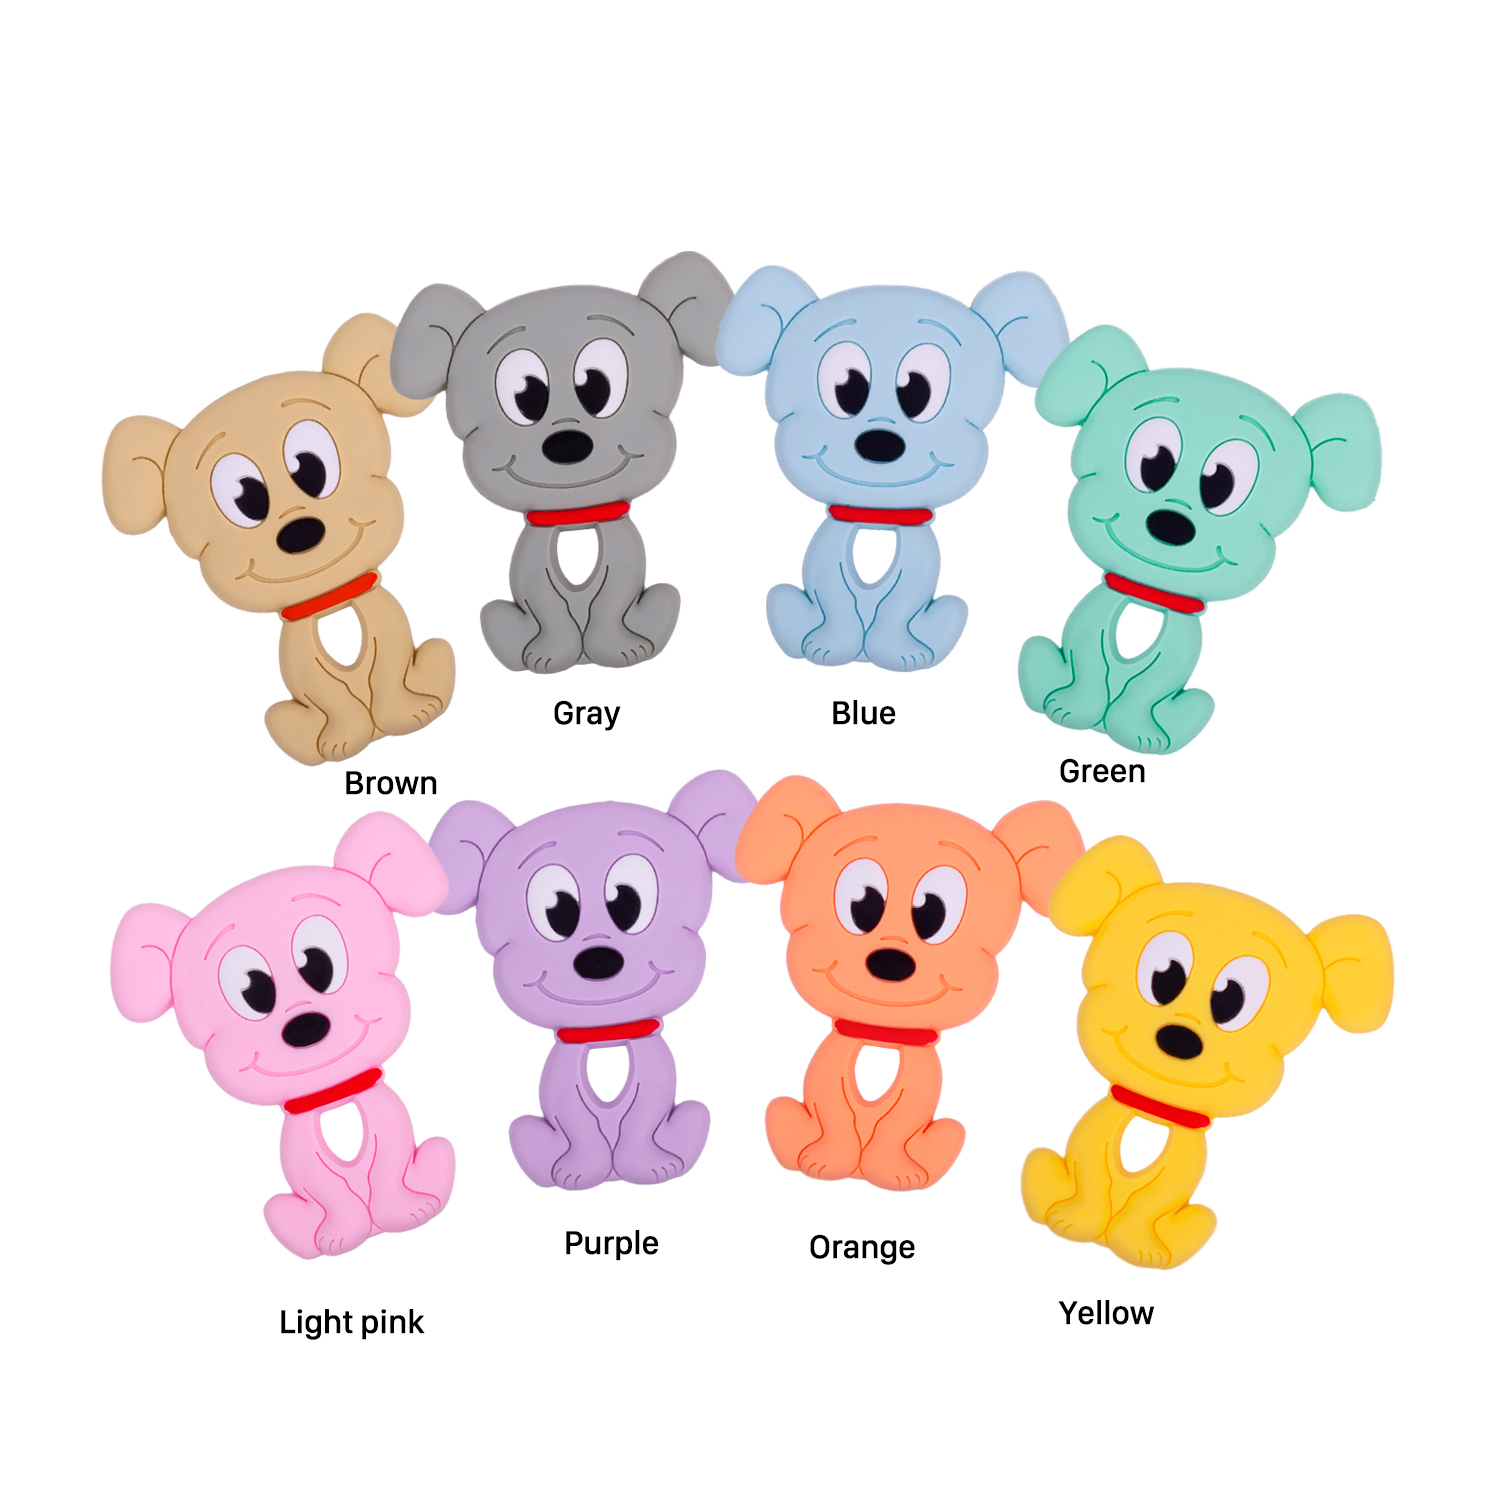 Baby Products Soft Chewable Silicone Coffee Drink Pendant Silicone Baby Teether Sensory For Teething Toys